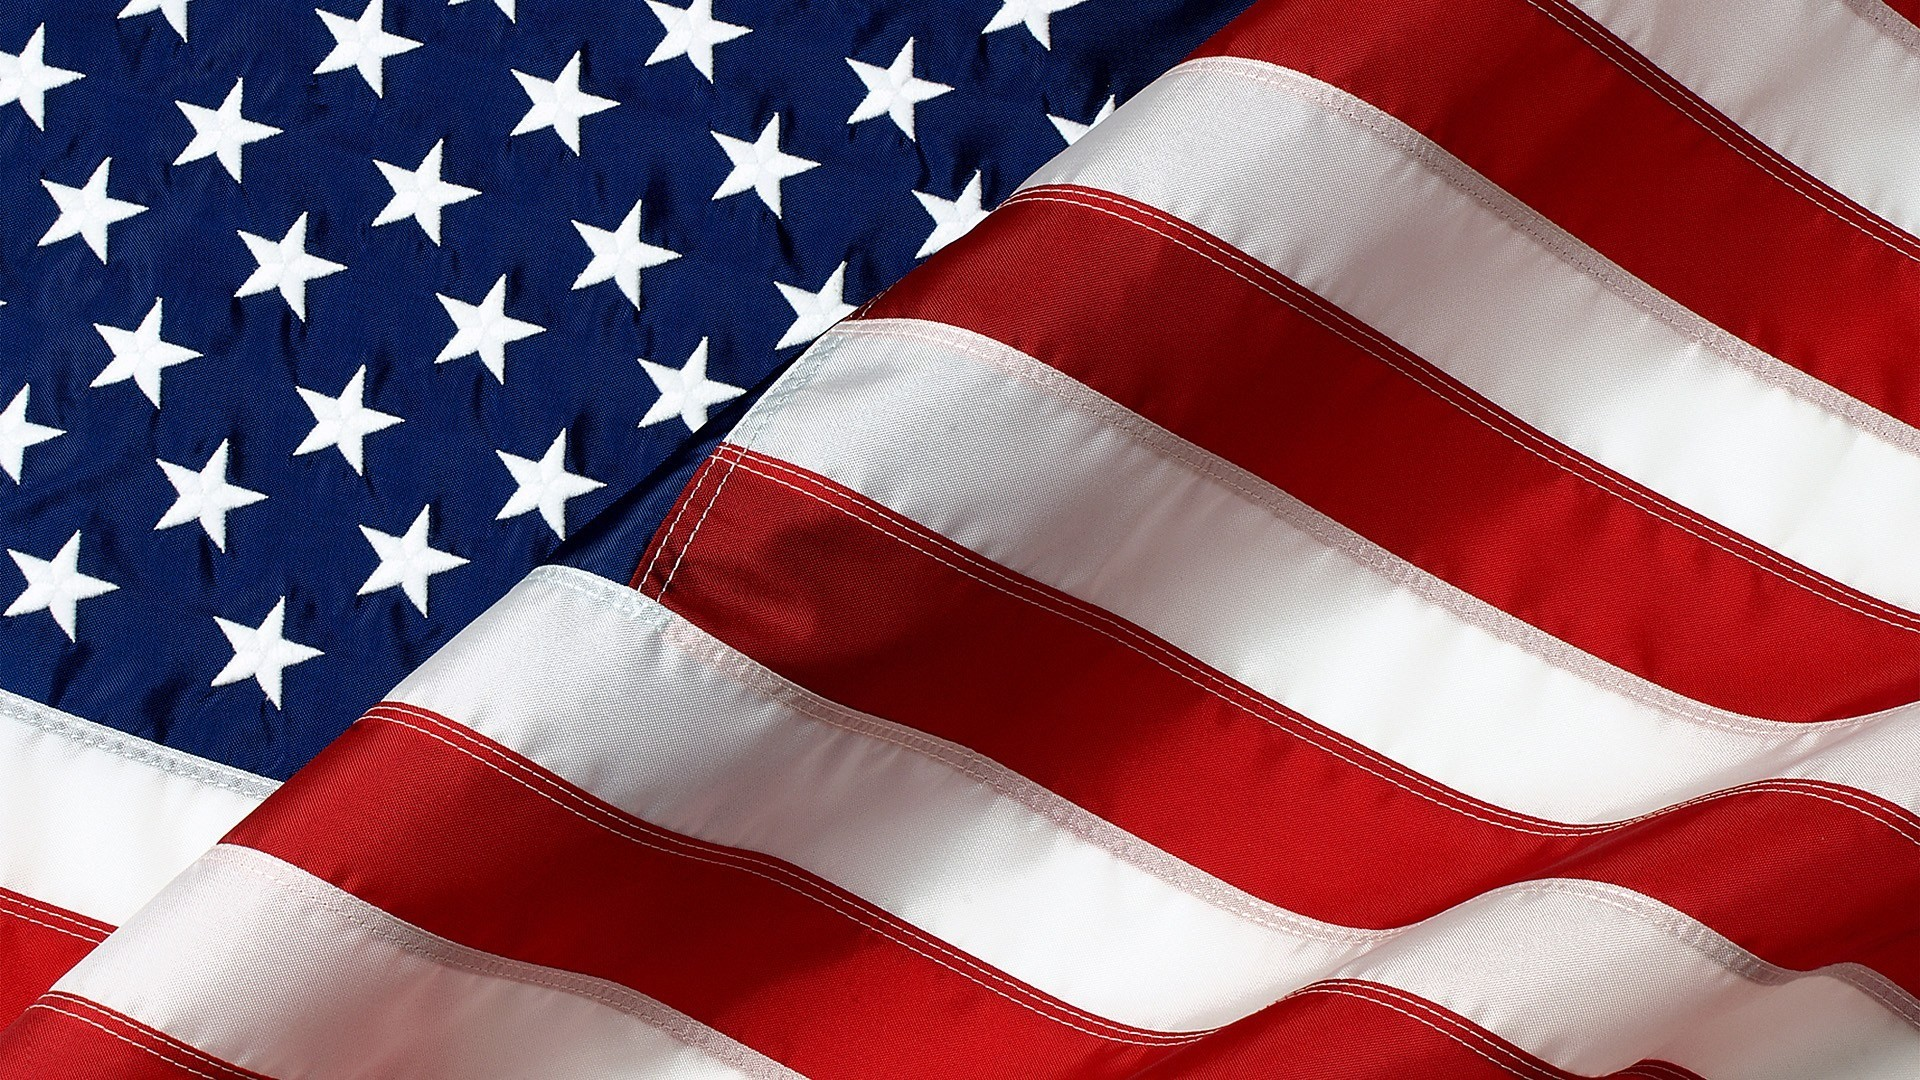 american flag screensavers backgrounds by Collier Backer